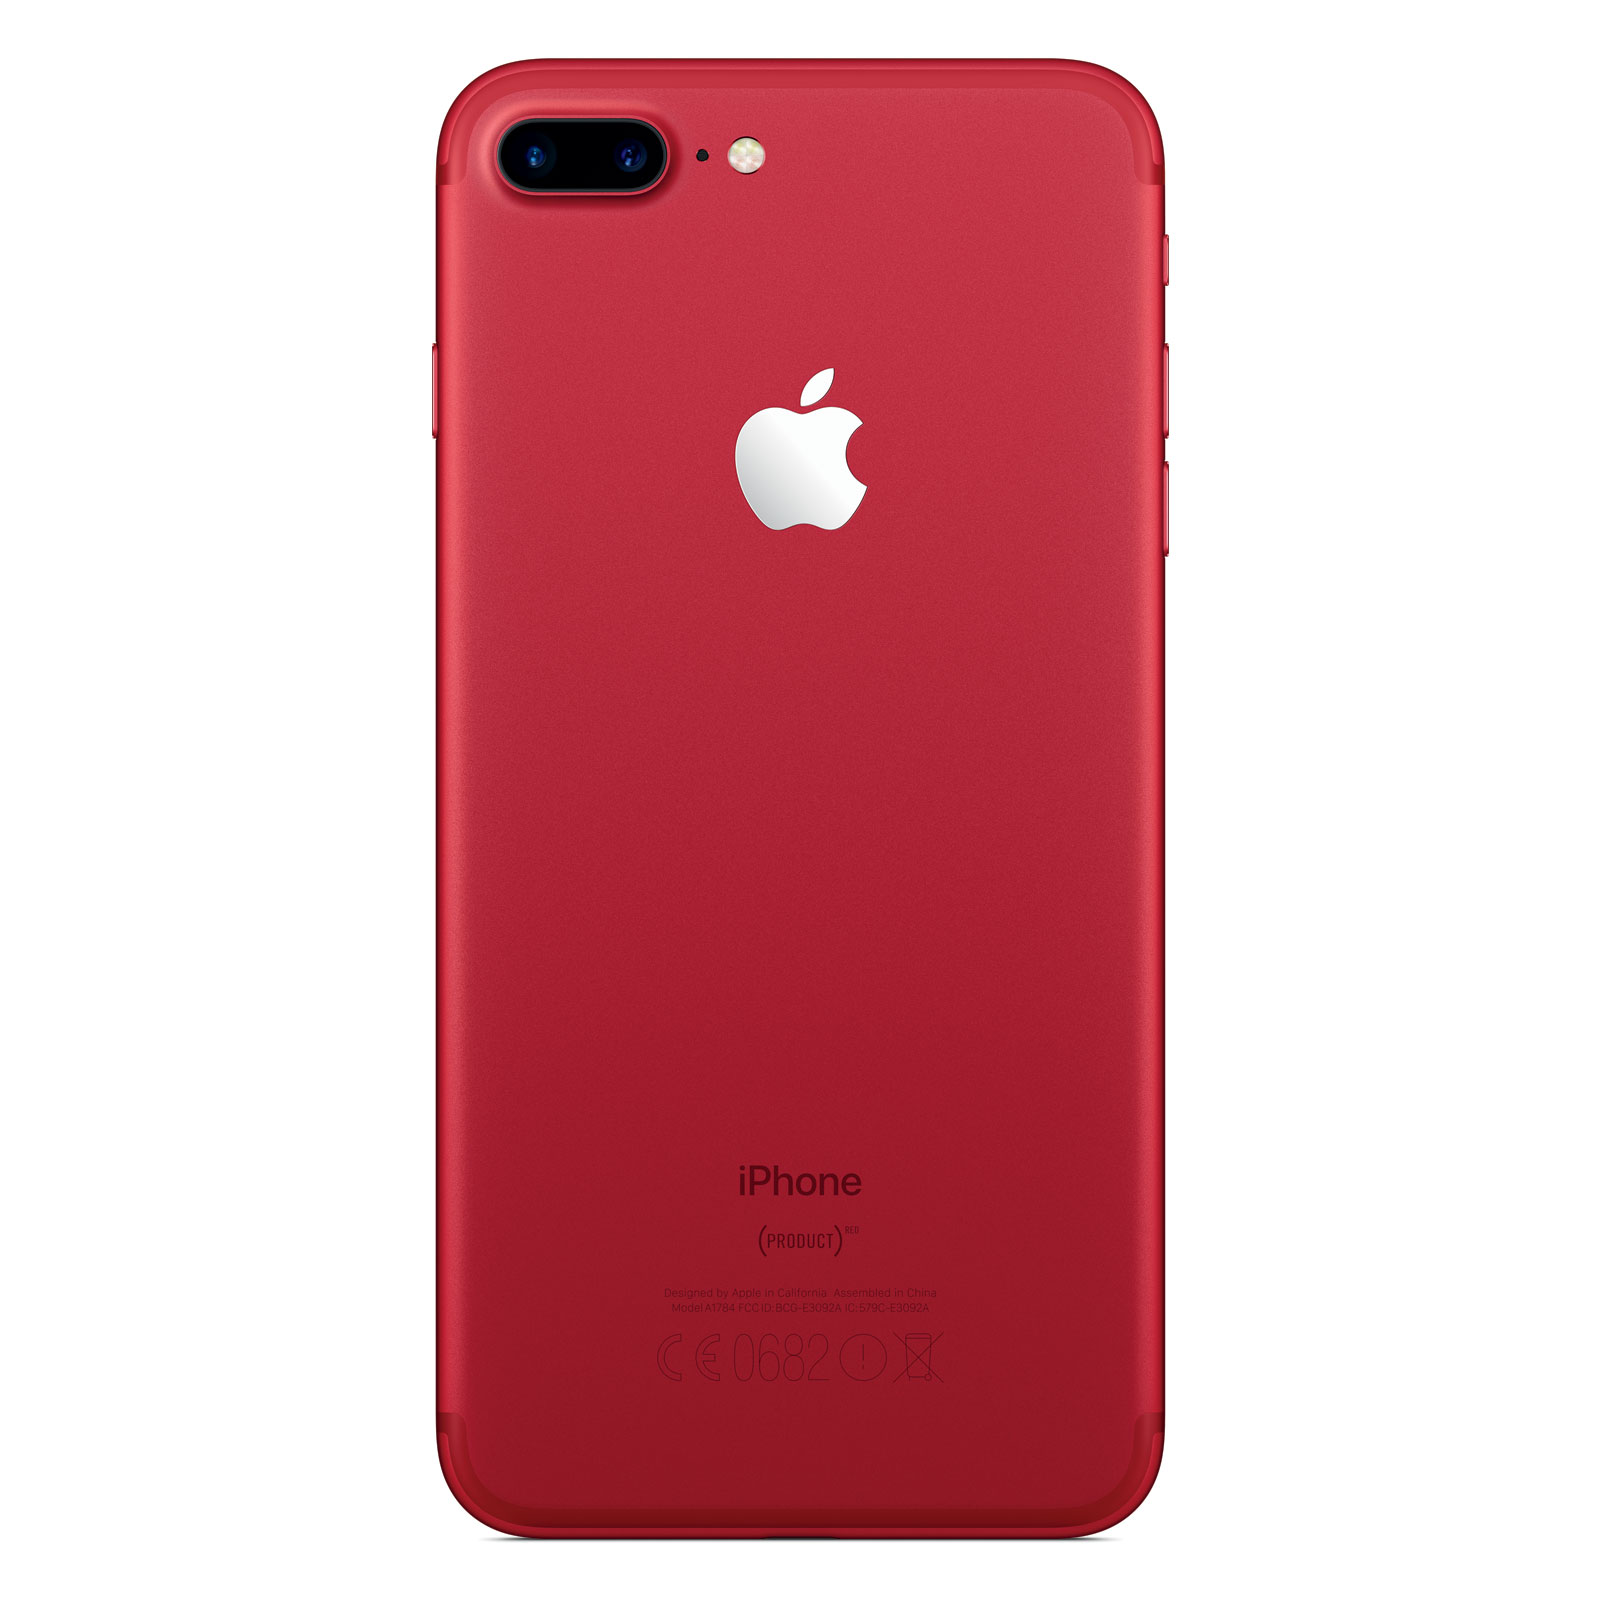 apple iphone 7 plus 128 go rouge special edition mpqw2zd a achat vente mobile. Black Bedroom Furniture Sets. Home Design Ideas